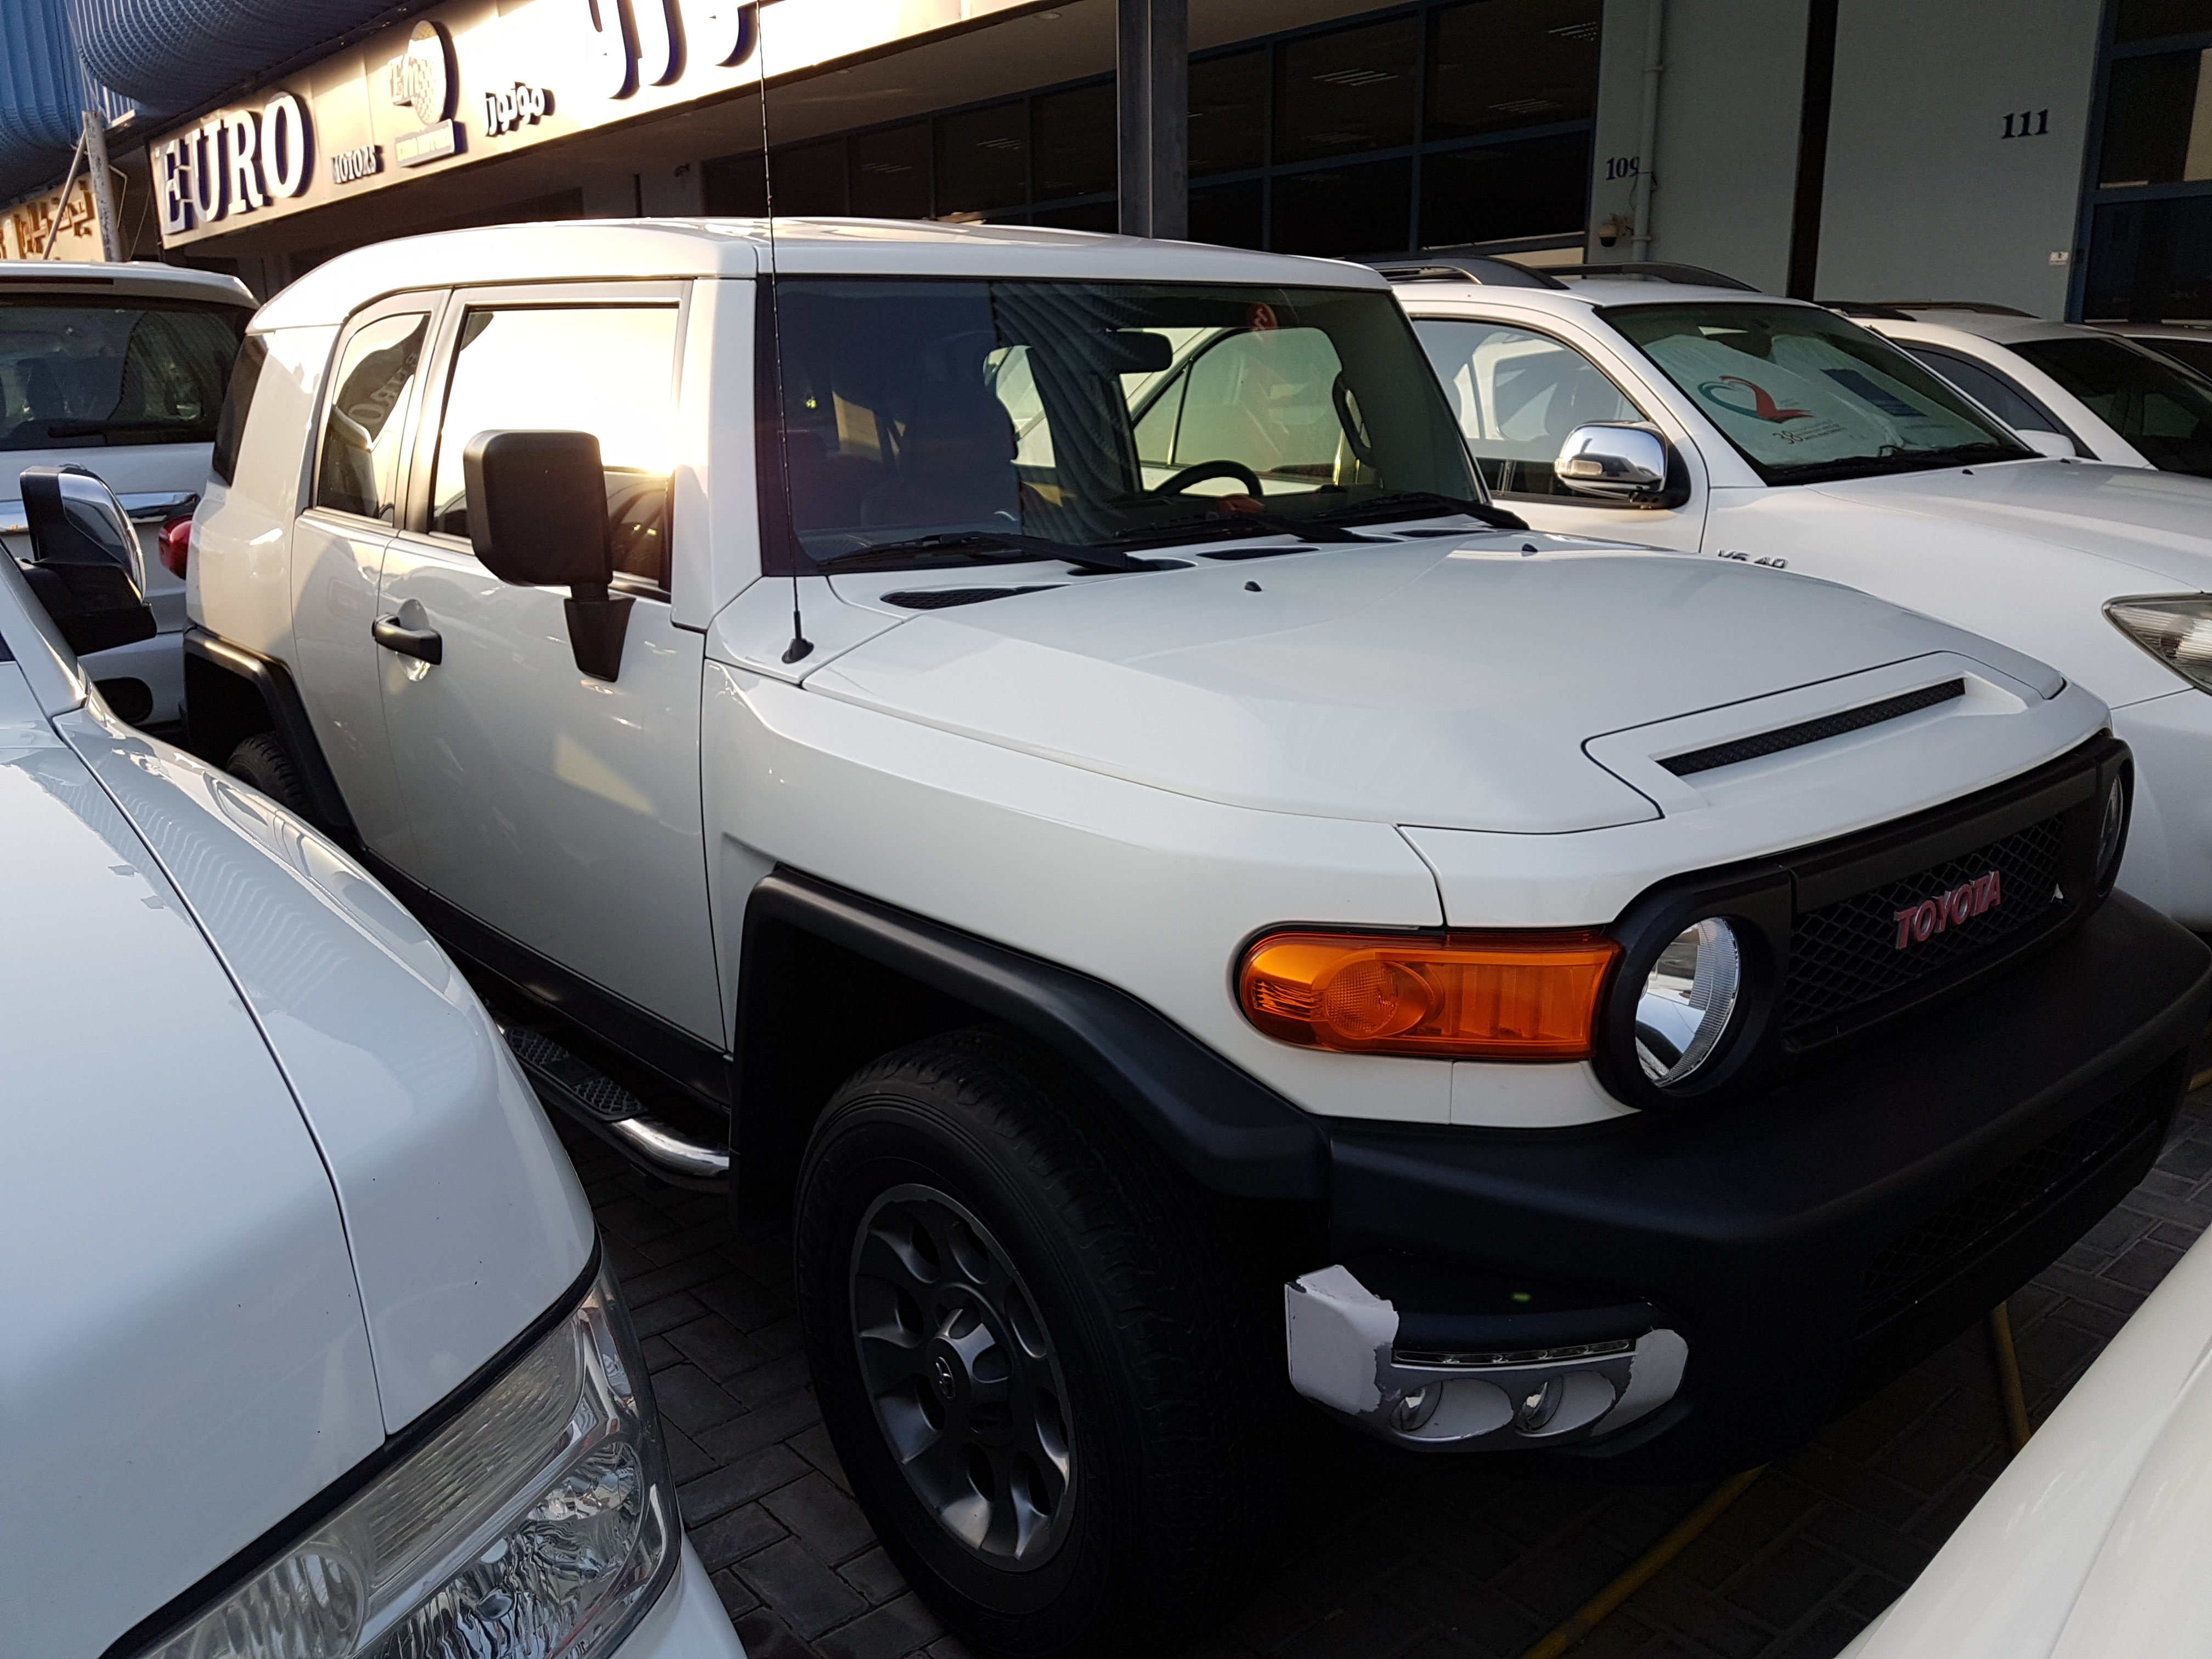 driving land sale sport restoration company enthusiast model the built serious for fj modern cruiser main toyota equipped